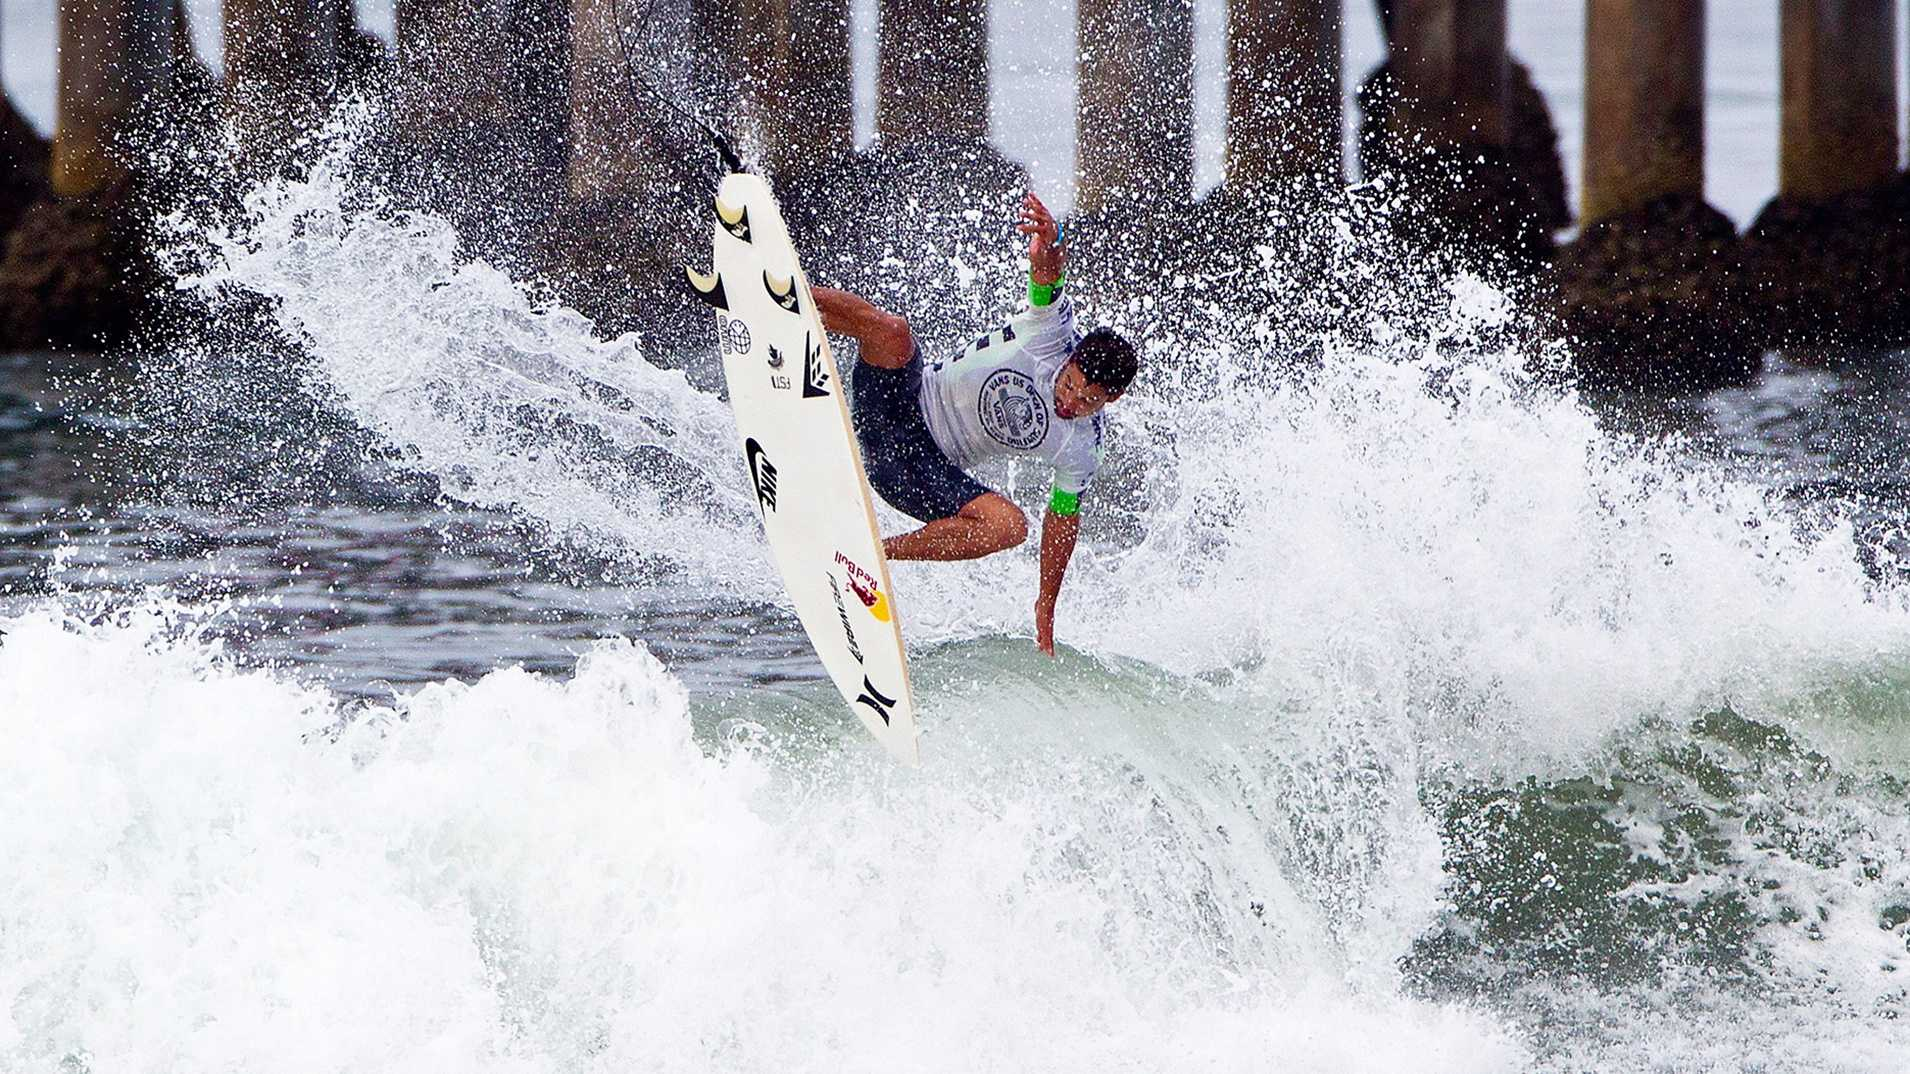 Michel Bourez defeated 11-time ASP World Champ Kelly Slater in at the Vans US Open of Surfing.